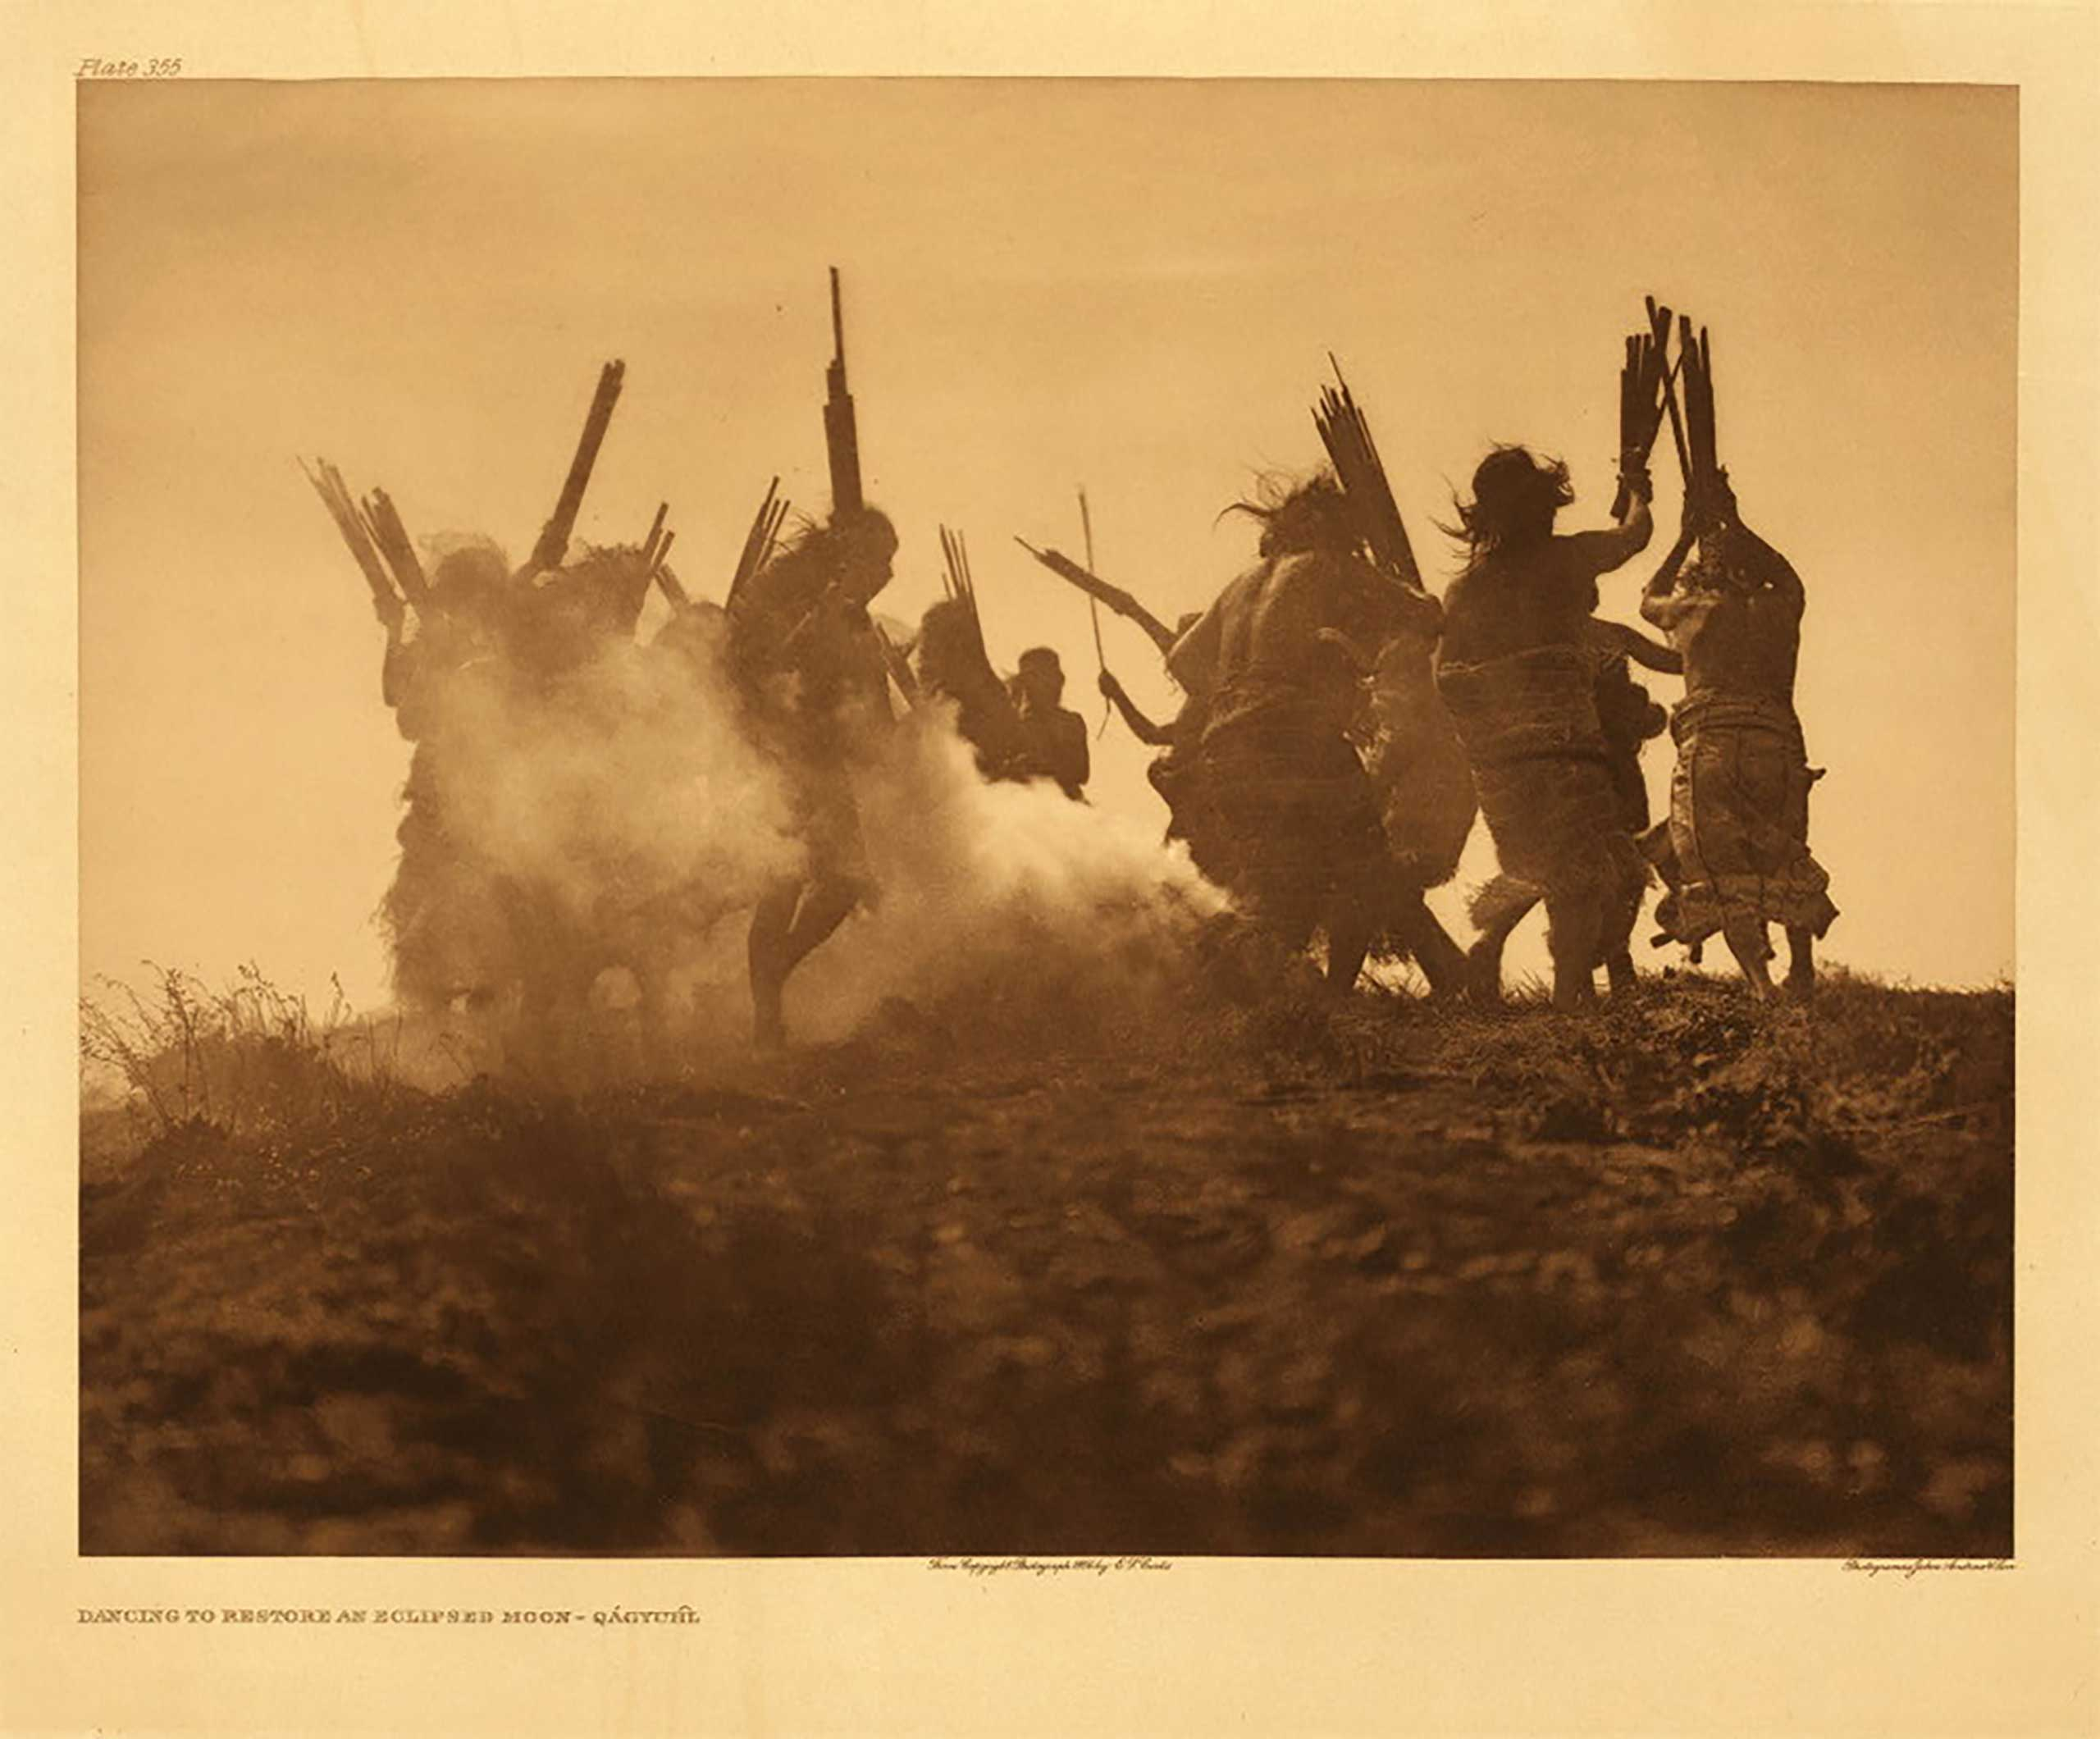 Edward S. Curtis Among the Kwakiutl, Fenimore Art Museum, N.Y.: Oct. 1 - Dec. 31                                                                                             (Caption: Dancing to restore an eclipsed moon – Qagyuhl, 1914)